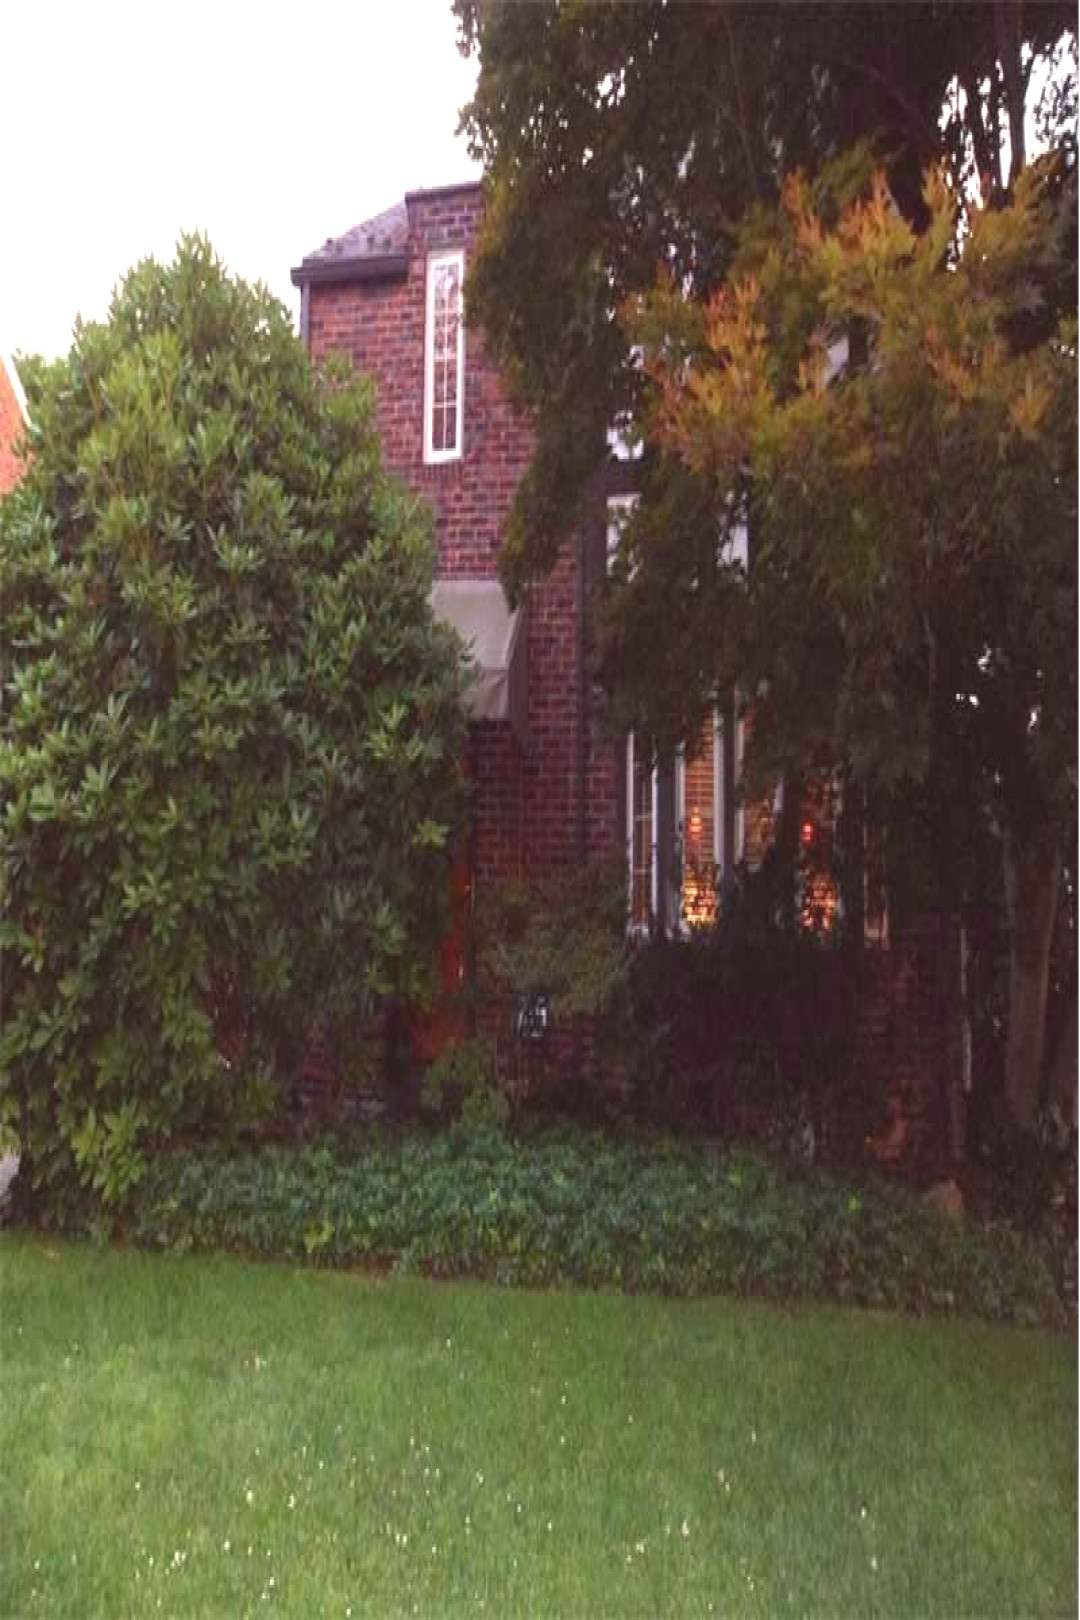 17 Love Pl, Pittsburgh, PA 15218 - MLS 1019546 - Coldwell Banker - -